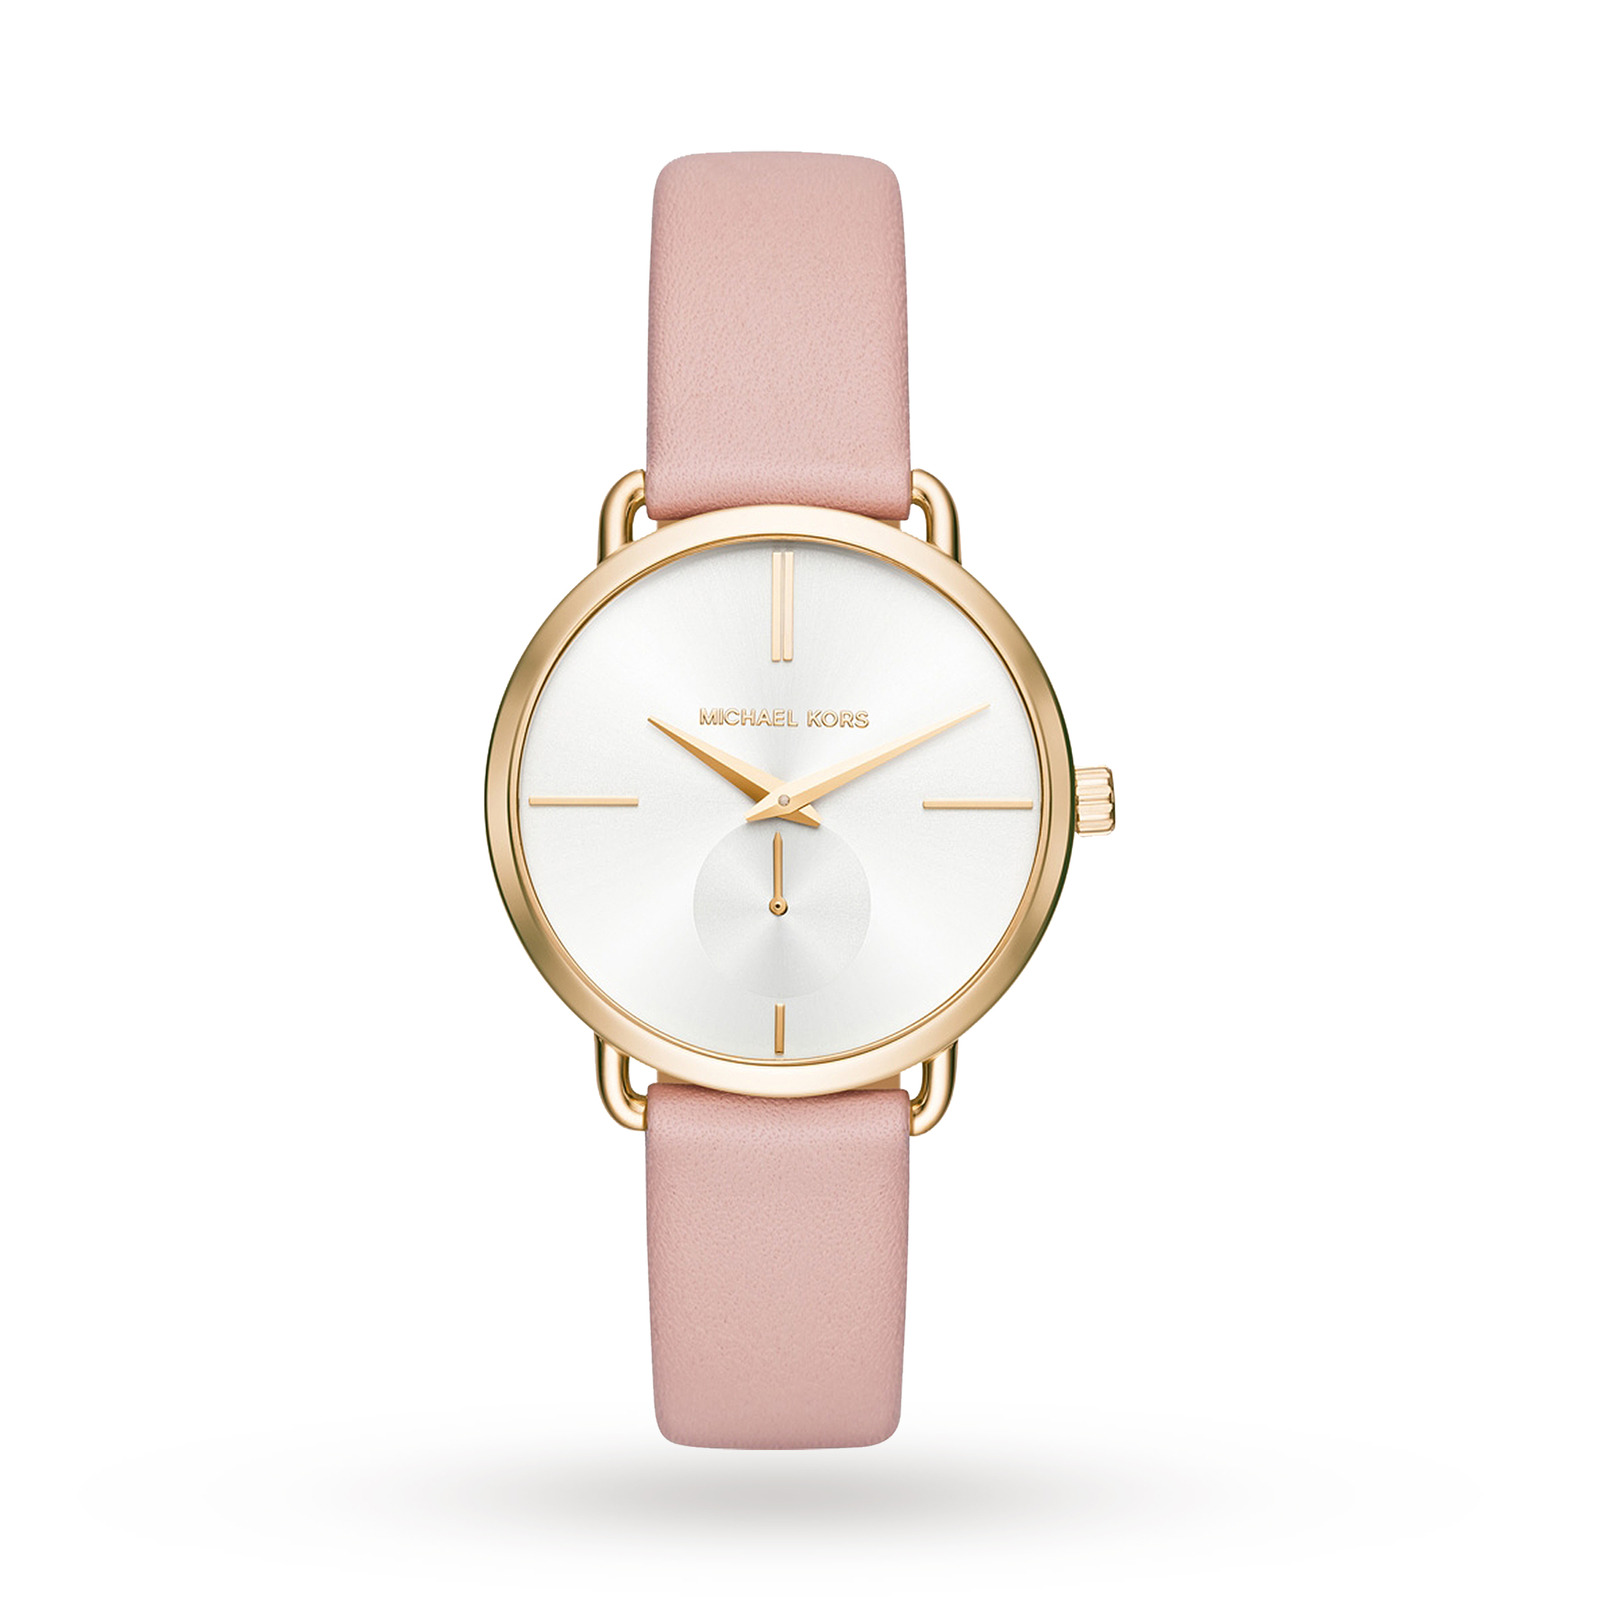 Michael Kors Portia Watch